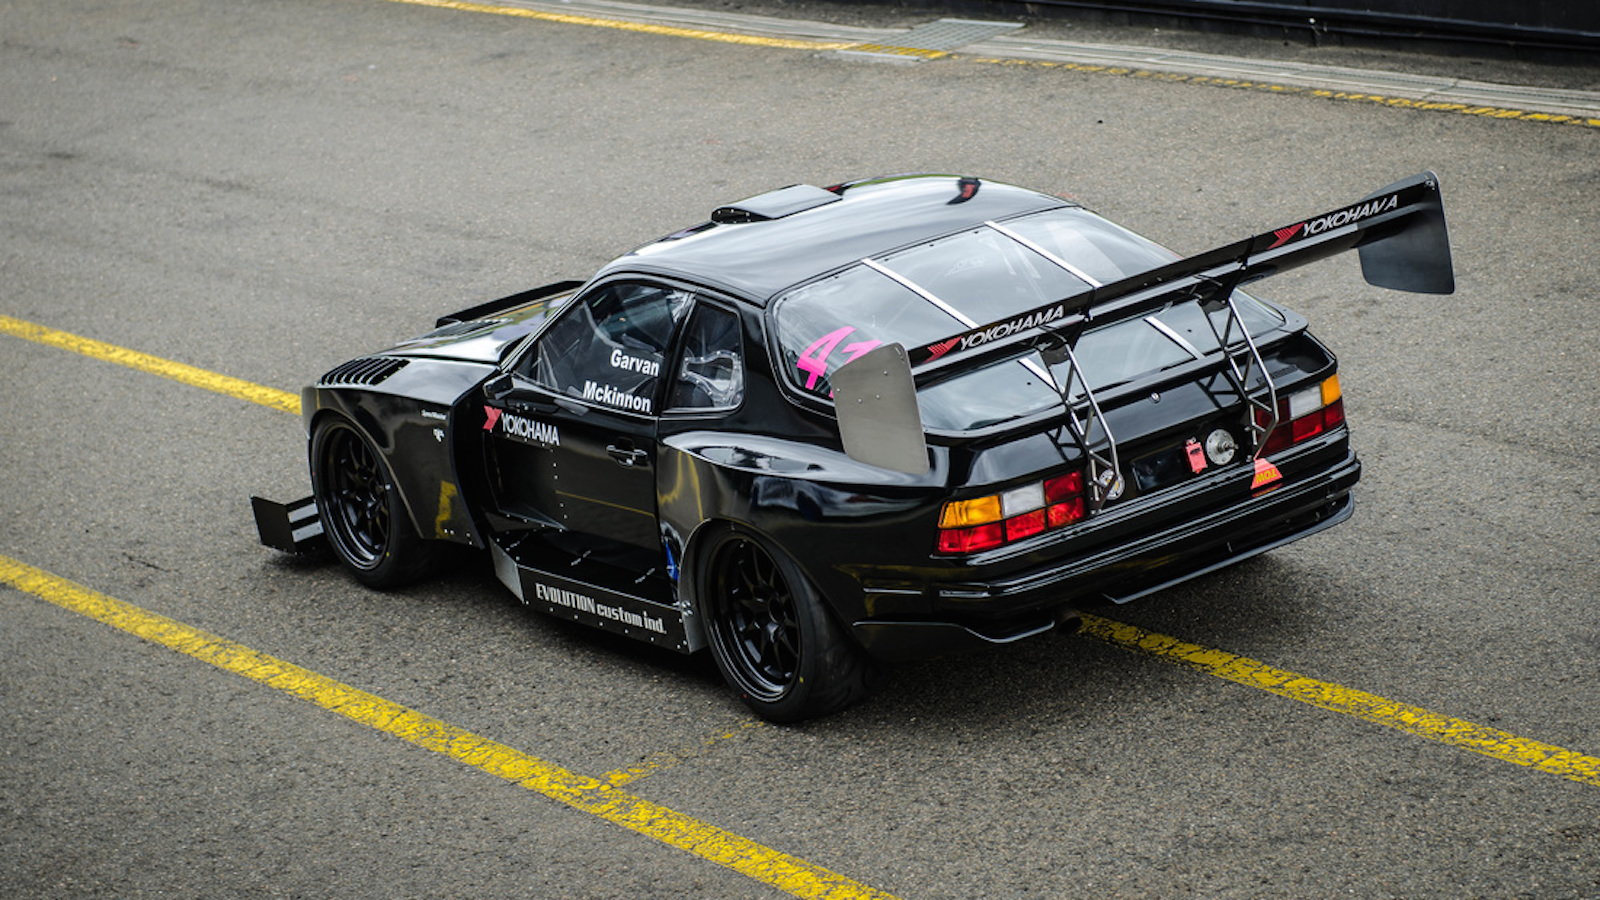 Building a Top Level Time Attack Car